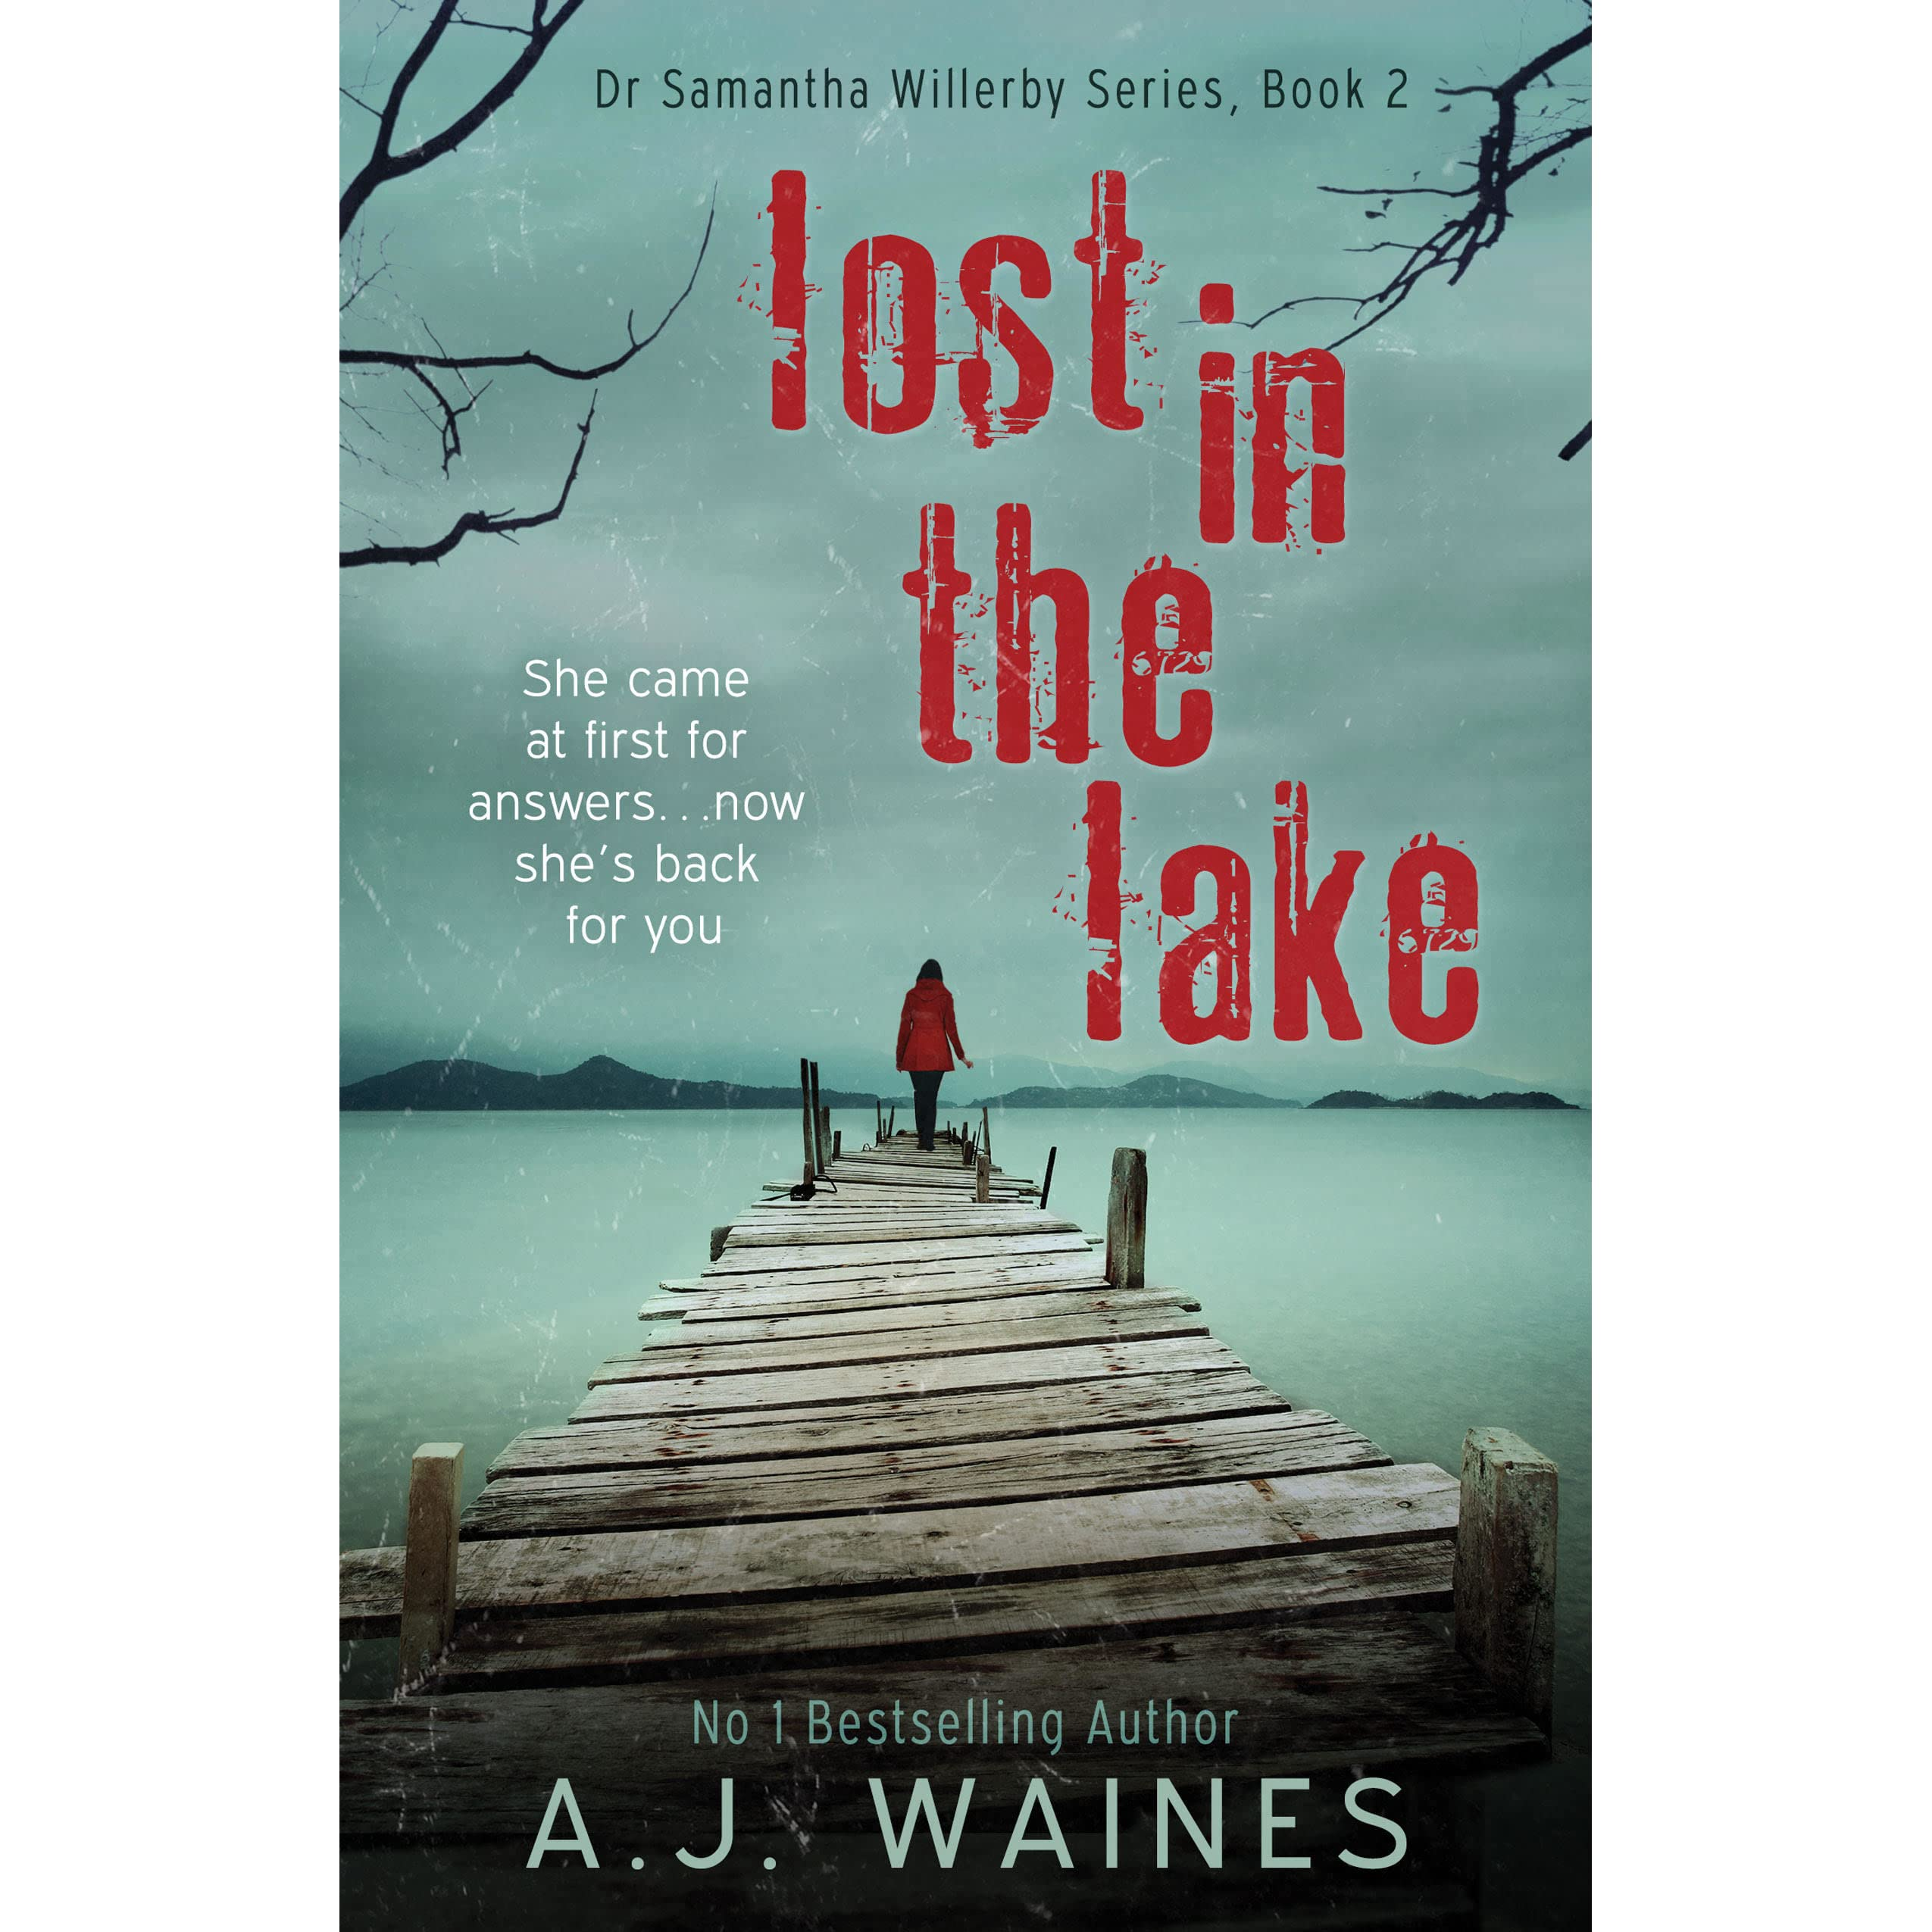 Lost In The Lake (Dr. Samantha Willerby, #2) by A.J. Waines